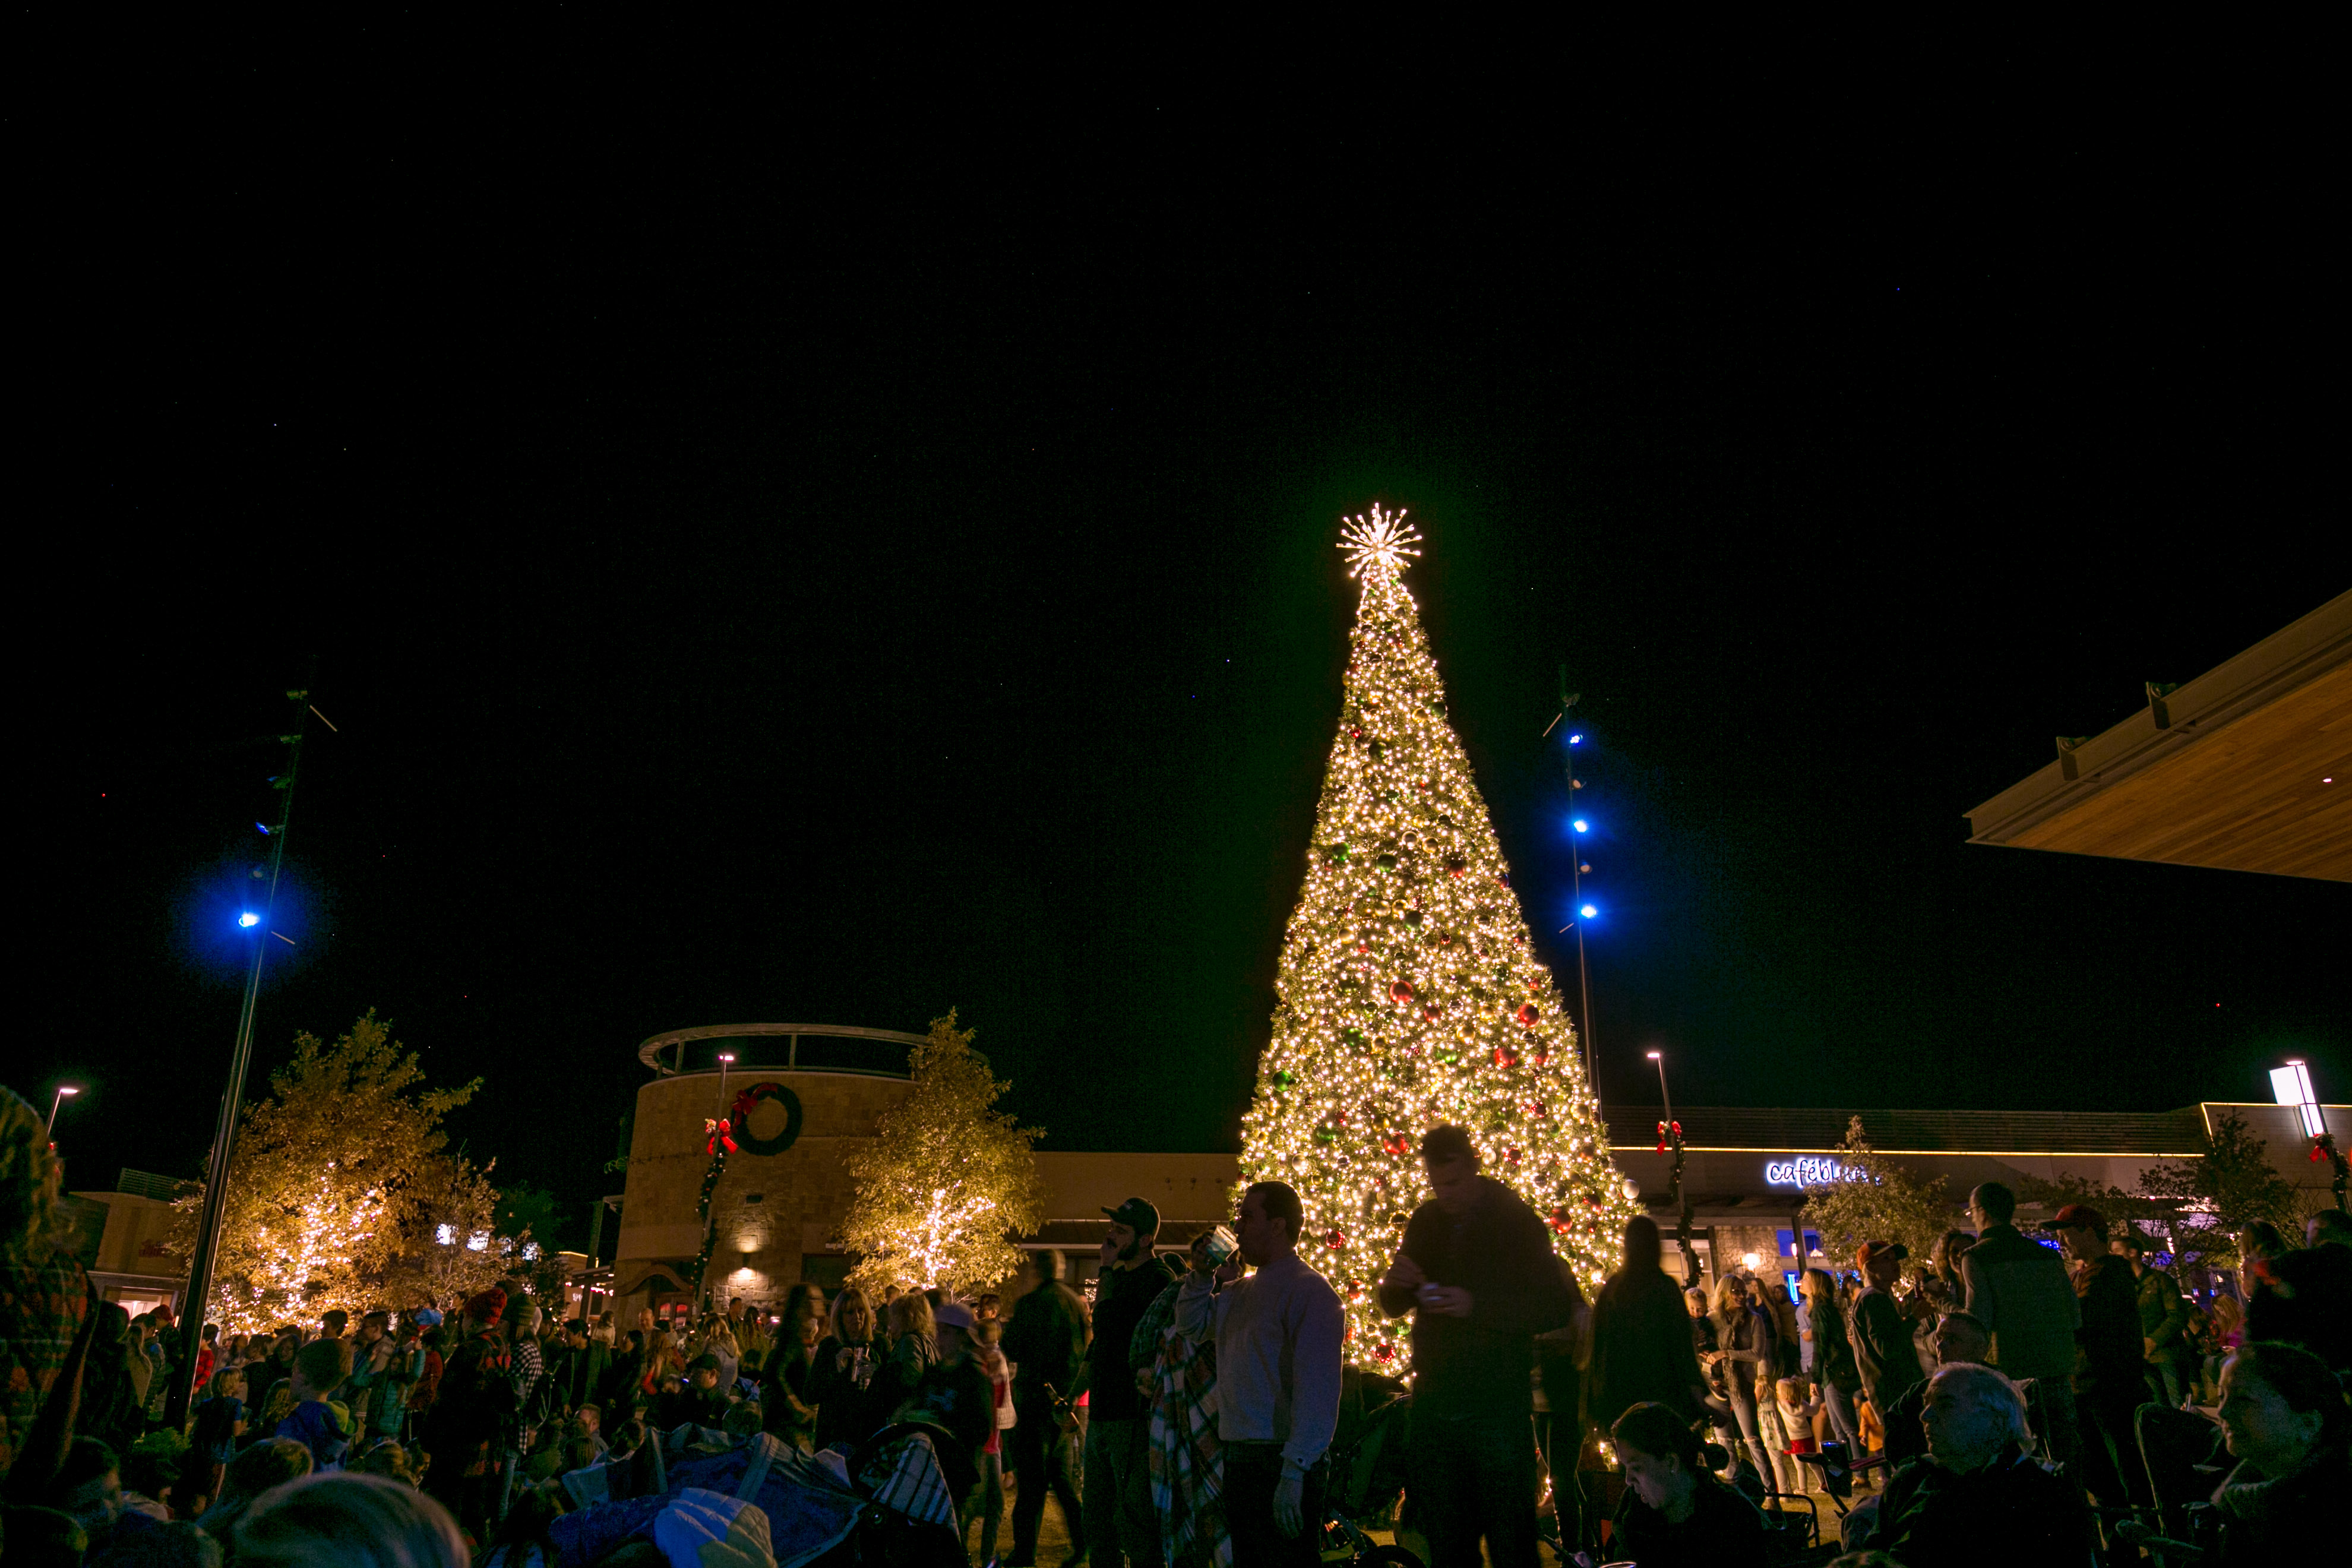 Hill Country Galleria Christmas Tree Lighting 2020 Hill Country Galleria Holiday Village and Santa's Workshop